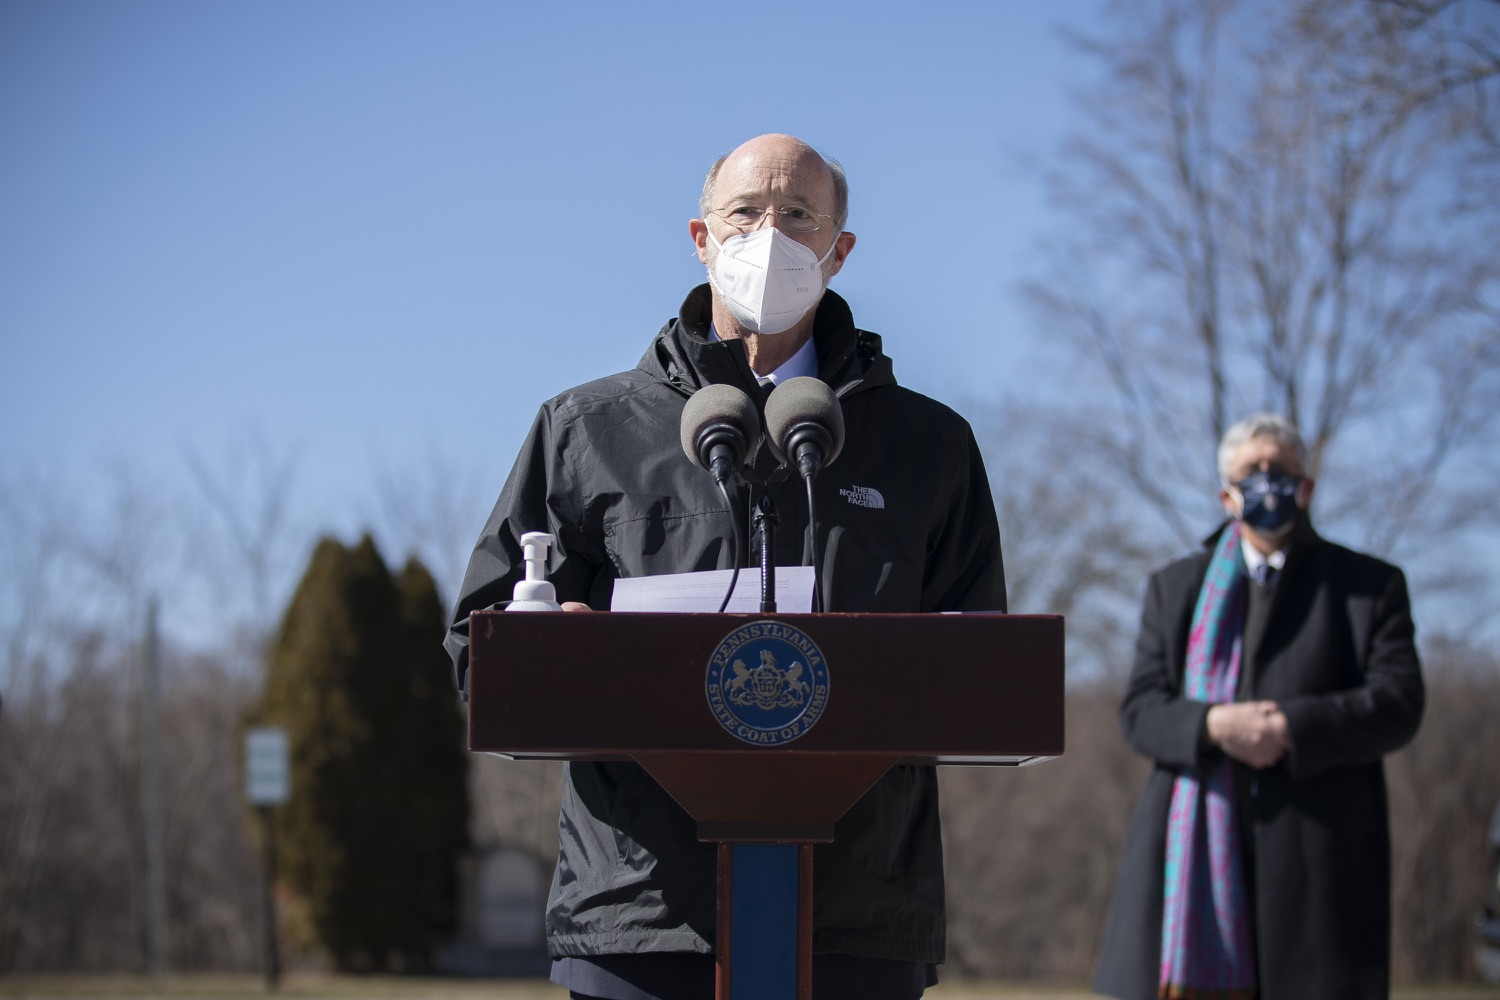 "<a href=""https://filesource.wostreaming.net/commonwealthofpa/photo/18560_gov_chirp_dz_04.jpg"" target=""_blank"">⇣ Download Photo<br></a>Pennsylvania Governor Tom Wolf answers questions from the press.  Governor Tom Wolf announced today that the hospitality industry will soon be able to apply for immediate relief through the COVID-19 Hospitality Industry Recovery Program (CHIRP), a new grant program established by the Wolf Administration to support local businesses in the hospitality industry that were affected by the COVID-19 pandemic. Harrisburg, PA  March 2, 2021. .."